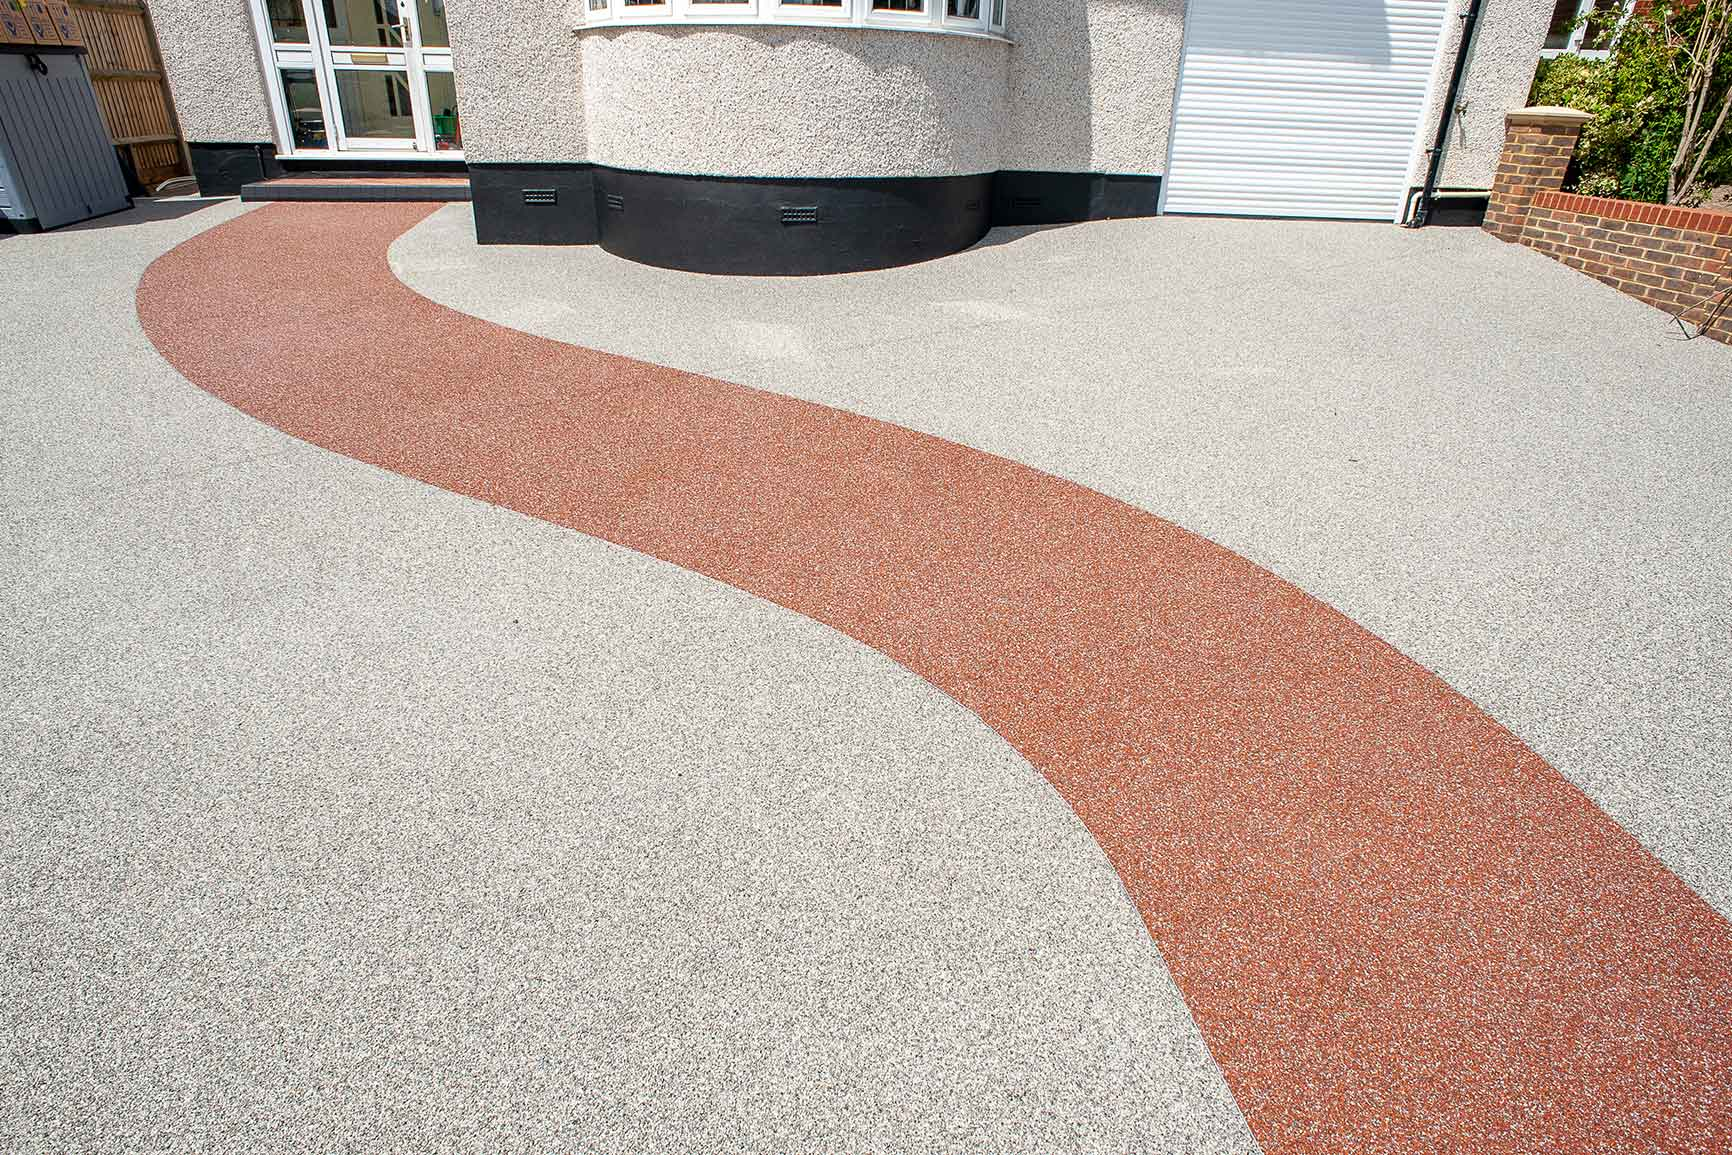 resin driveway with res resin bound pathway through it